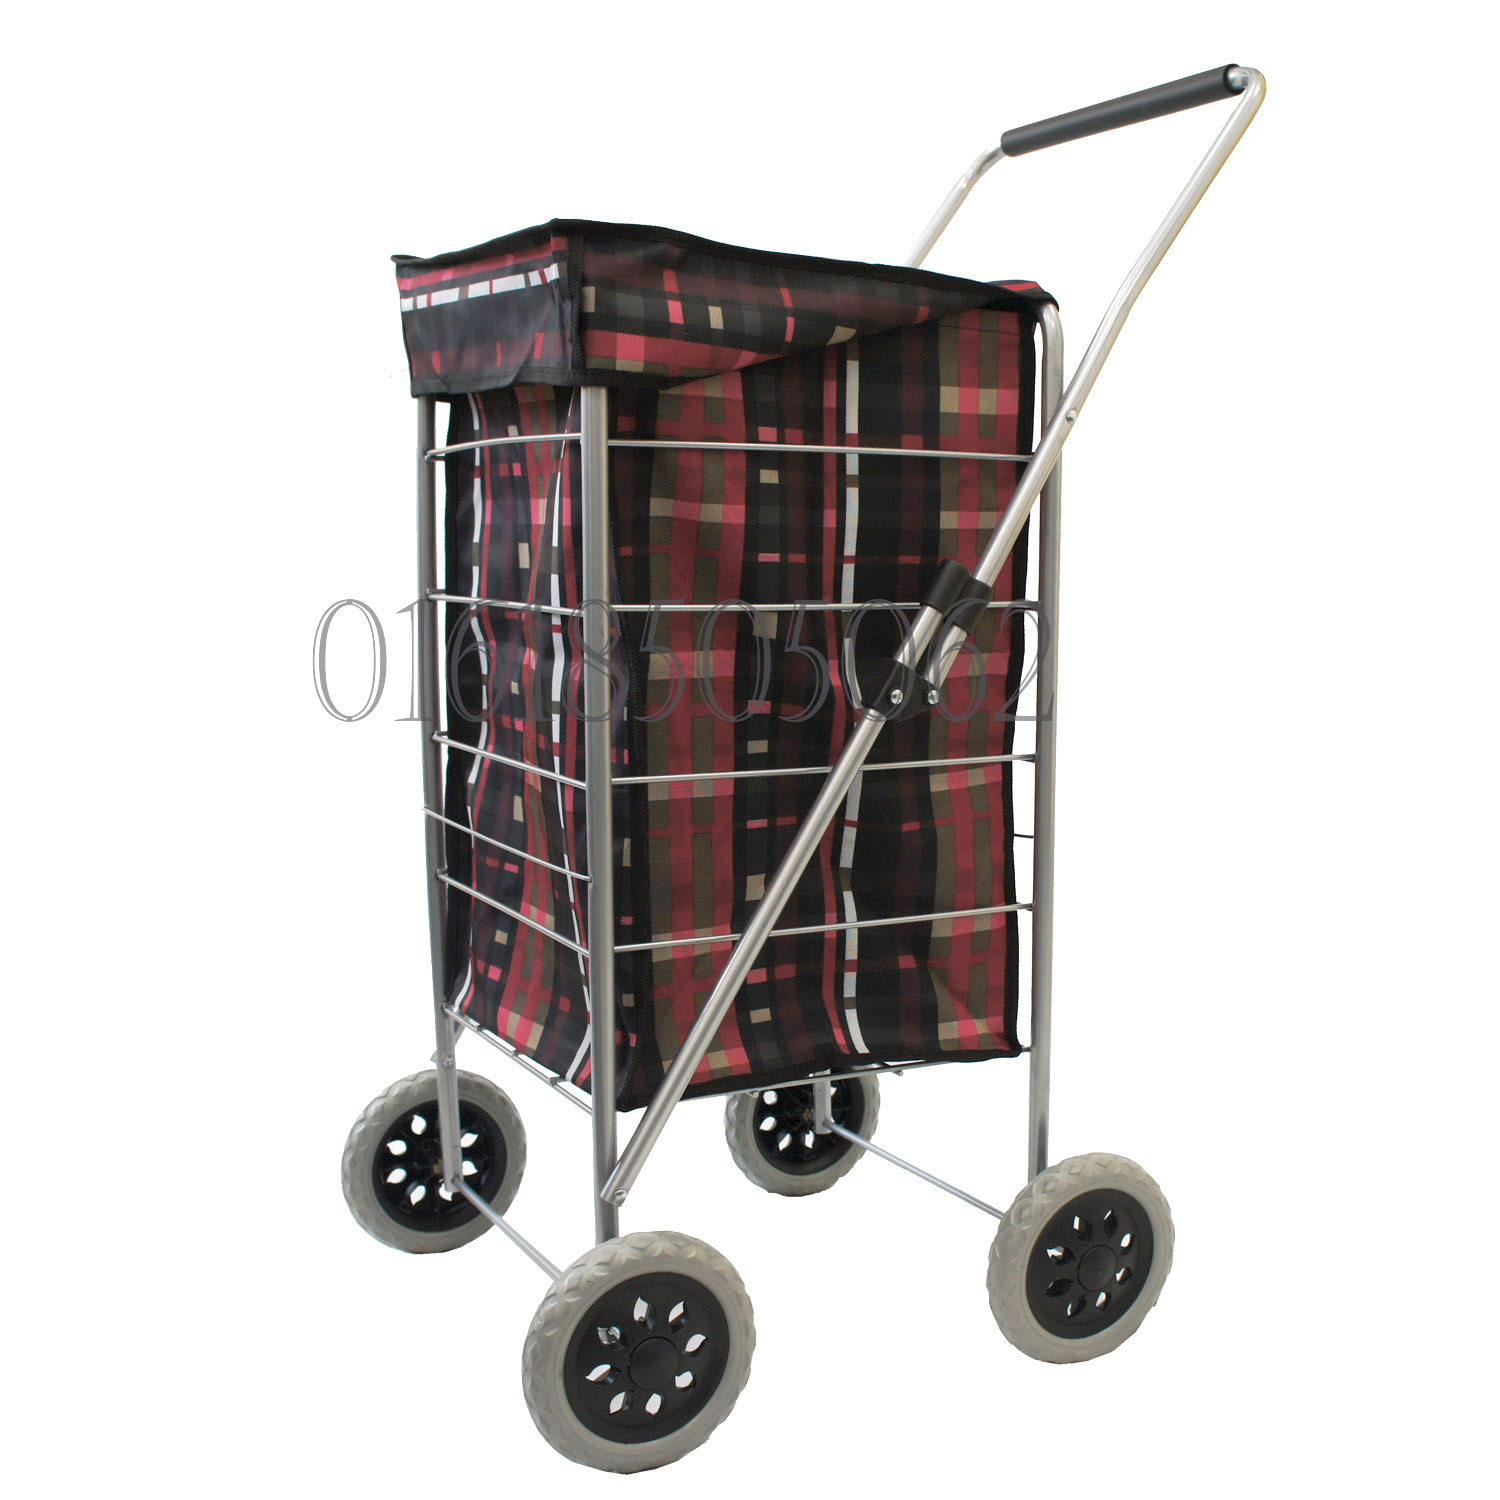 how to use trolley to move weighyt